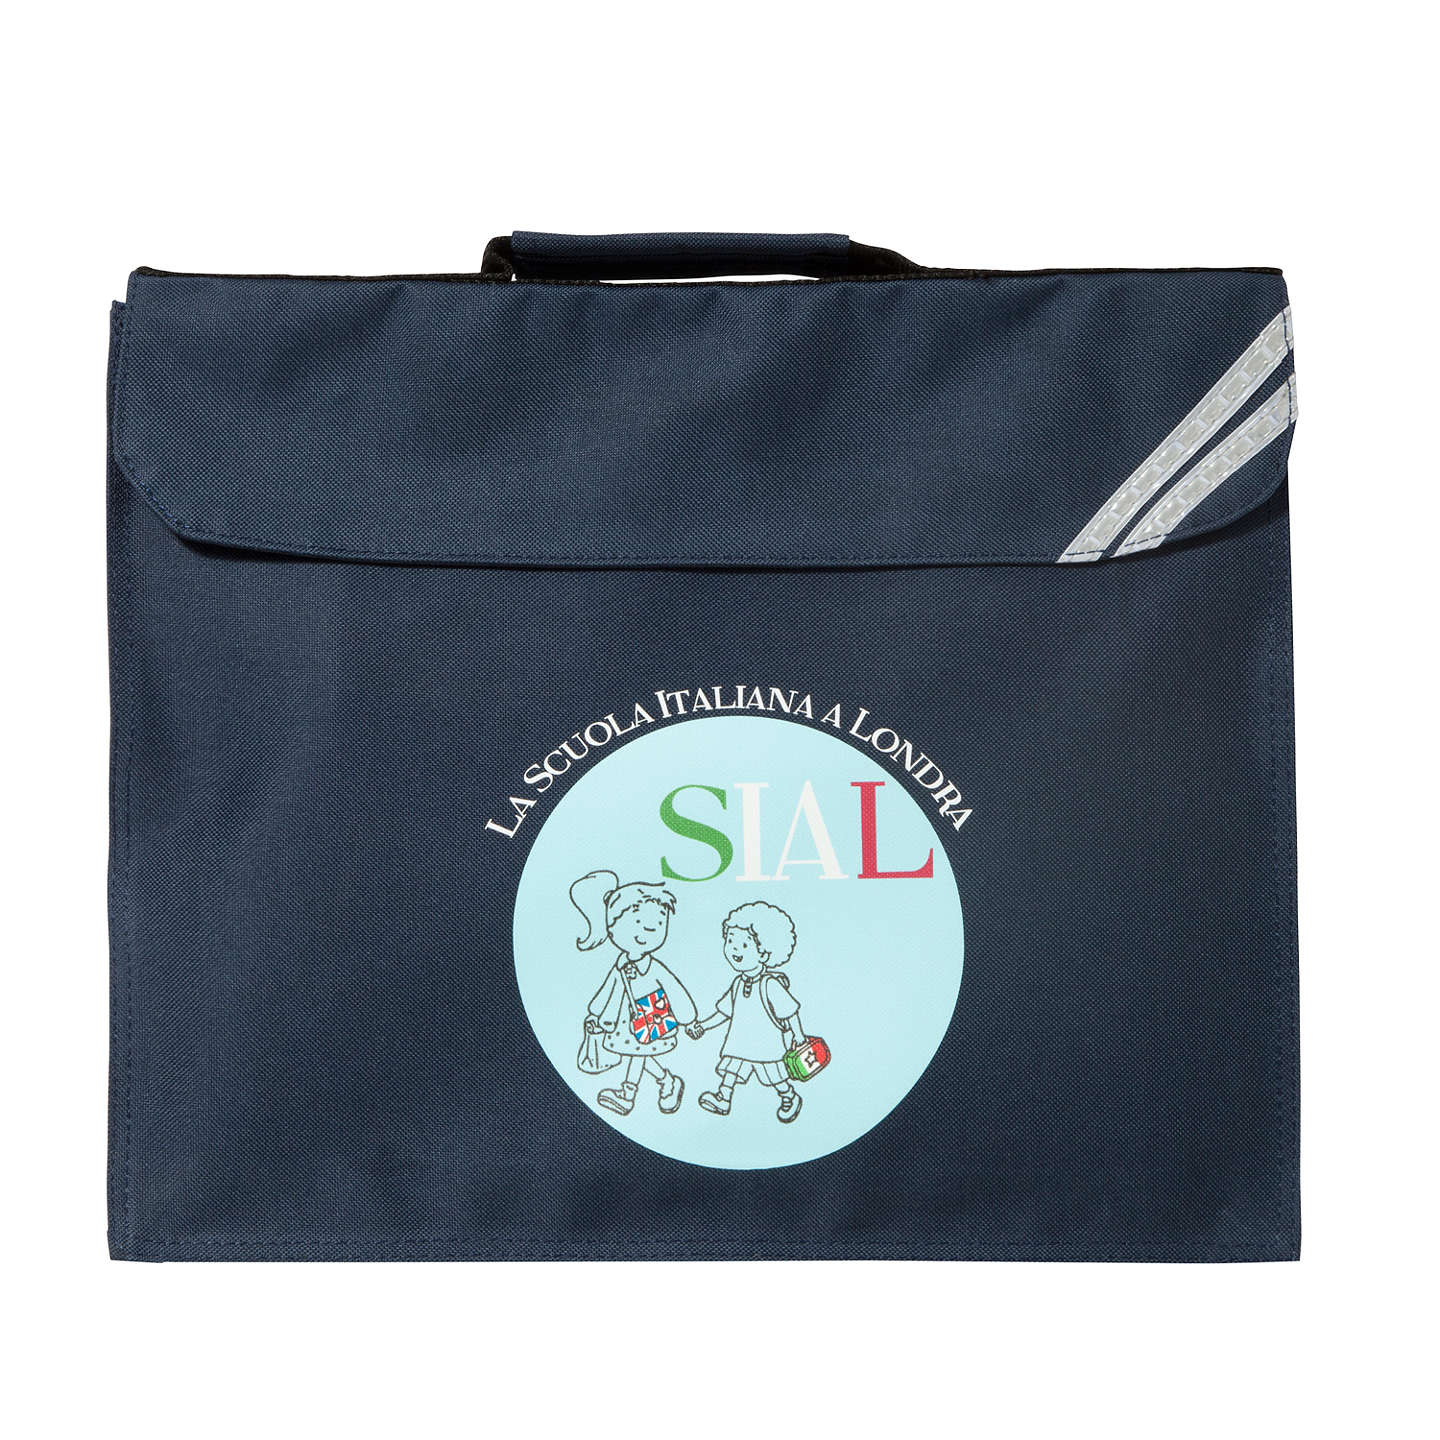 BuyLa Scuola Italiana A Londra Expandable School Book Bag, Navy Online at johnlewis.com